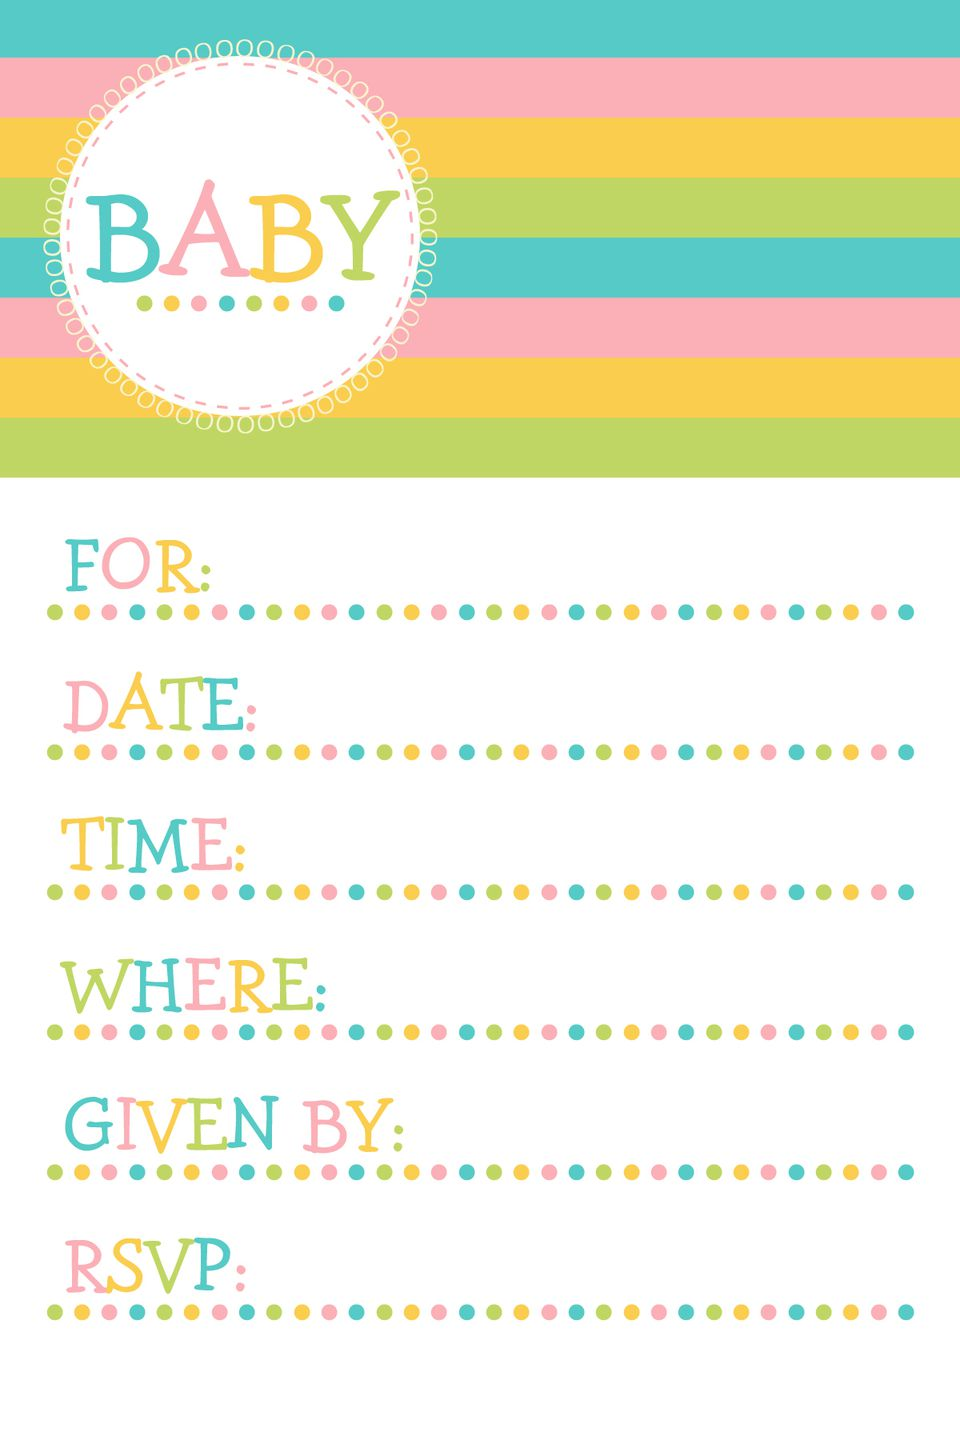 Full Size of Baby Shower:baby Boy Shower Ideas Free Printable Baby Shower Games Free Baby Shower Ideas Unique Baby Shower Decorations Elegant Baby Shower All Star Baby Shower Unique Baby Shower Decorations Girl Baby Shower Decorations